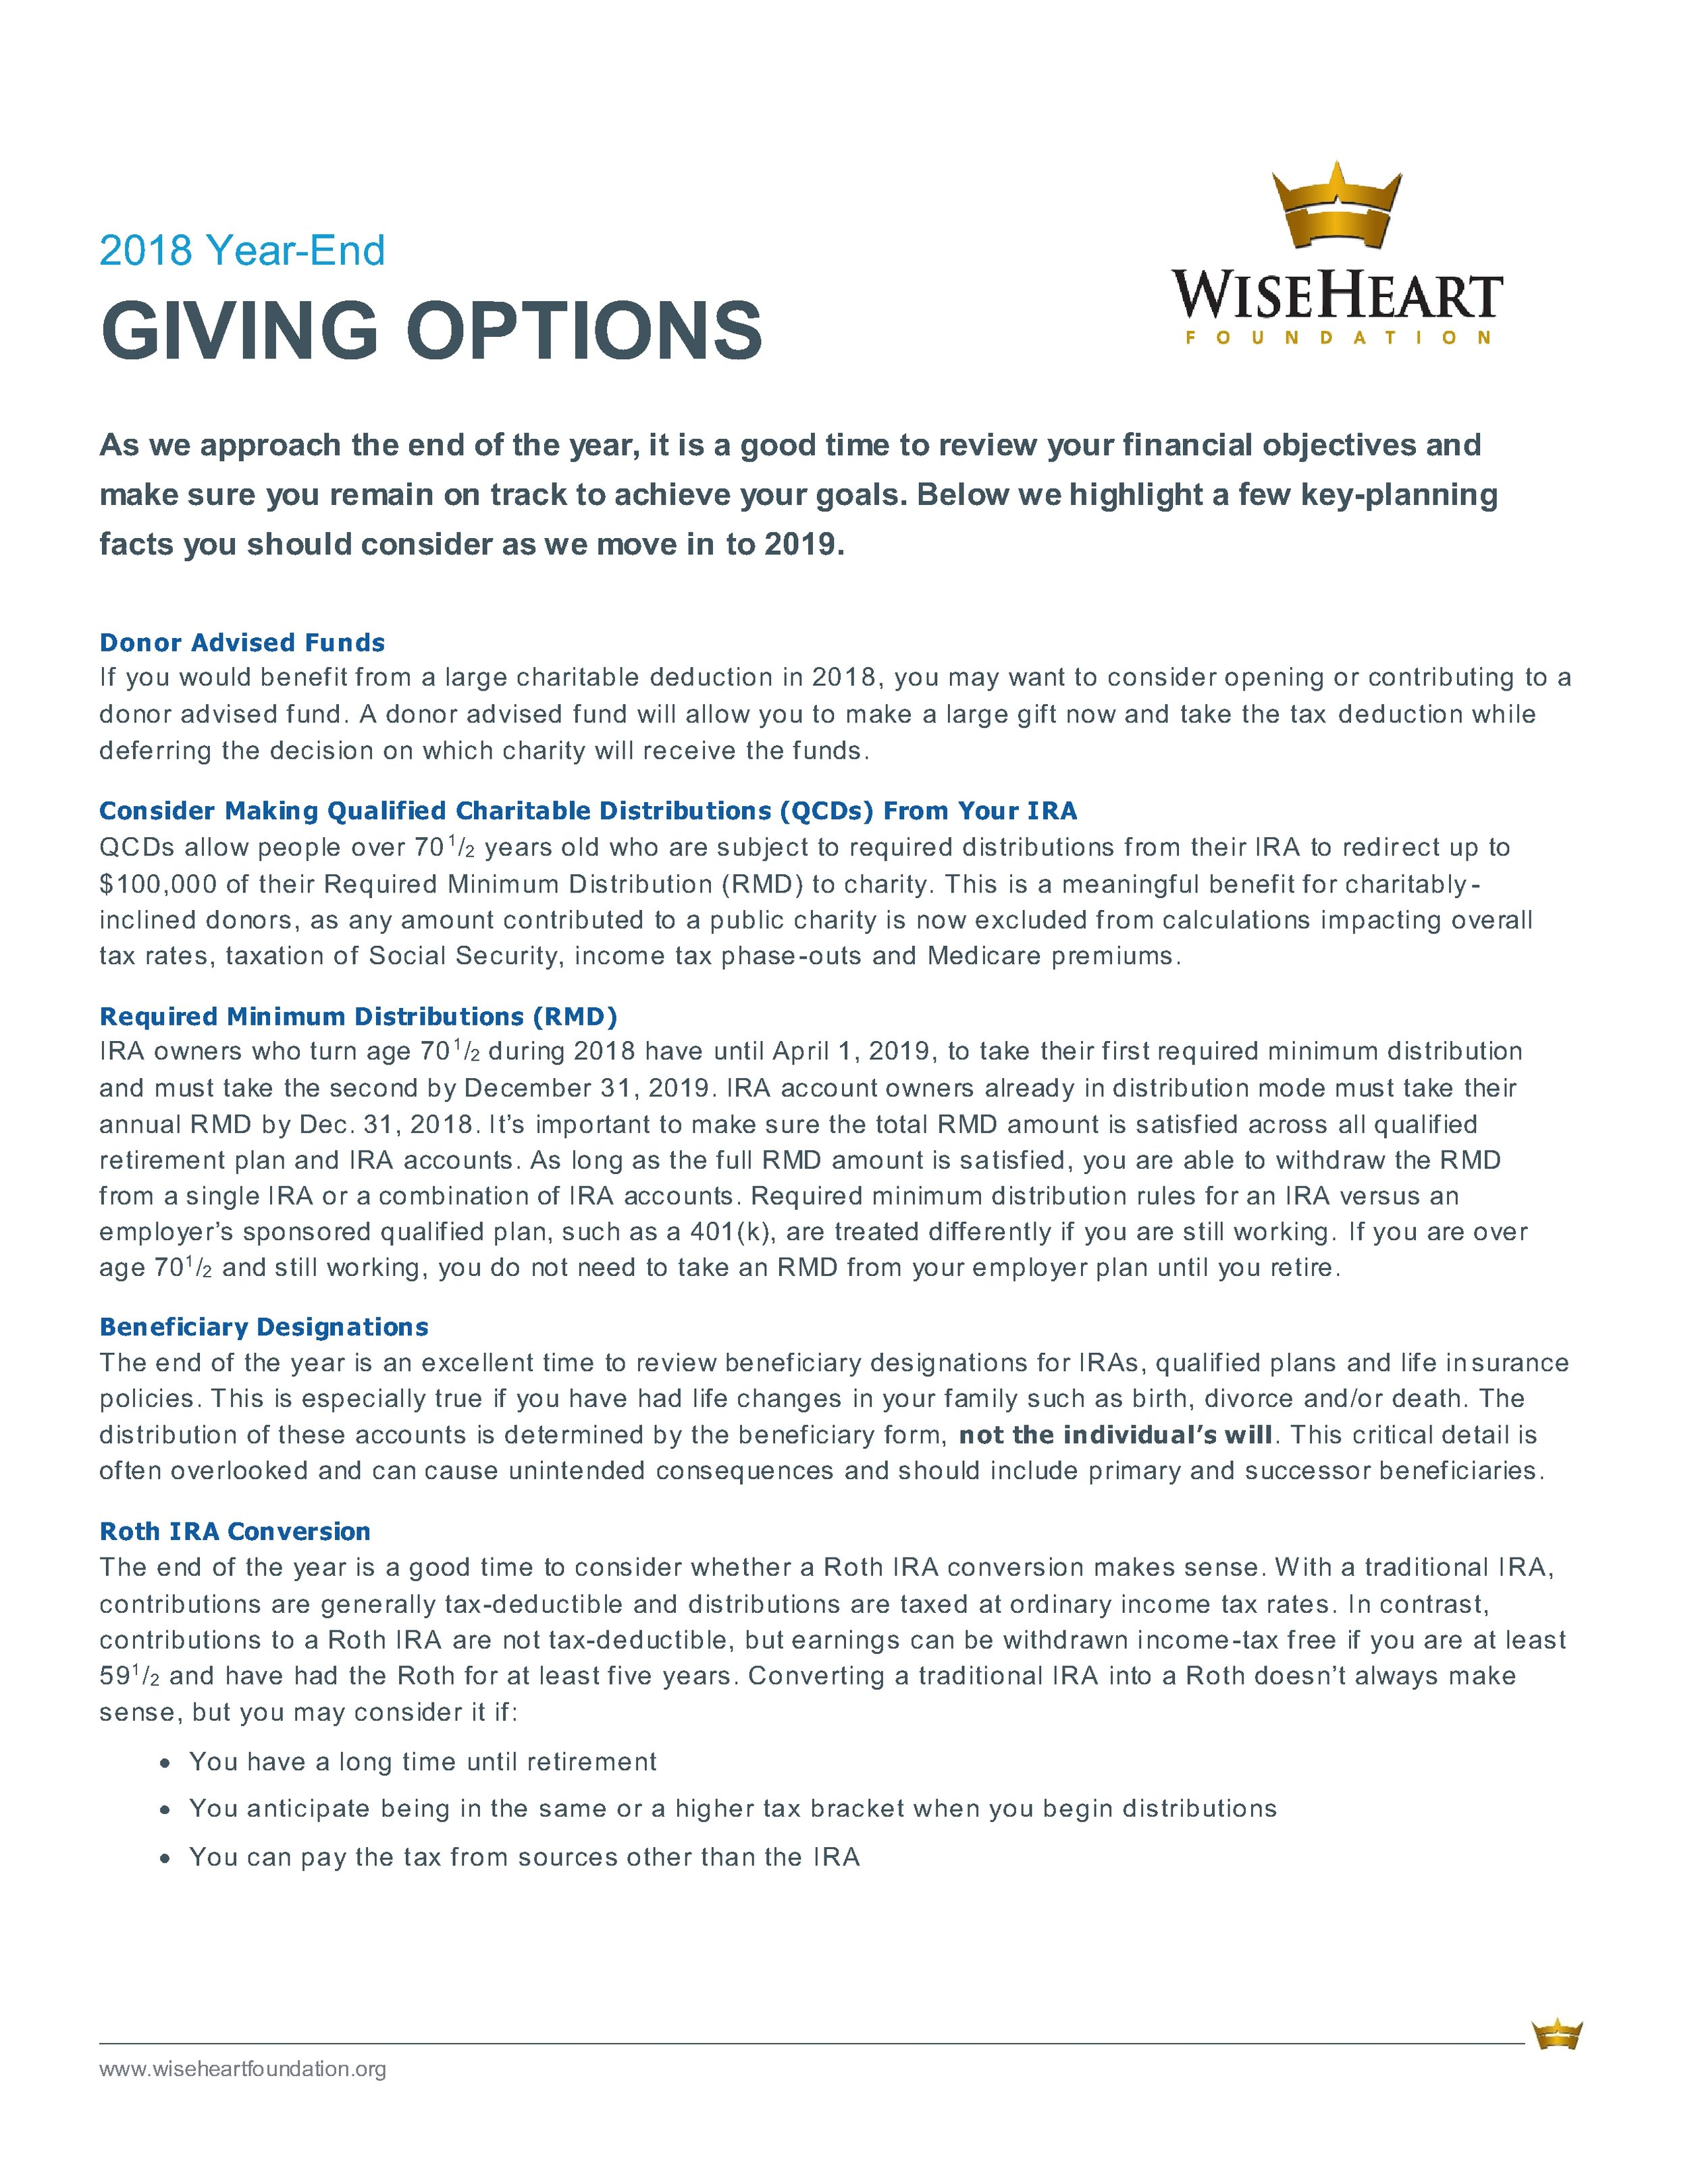 2018-Year-End-Donor-Letter_1.jpg